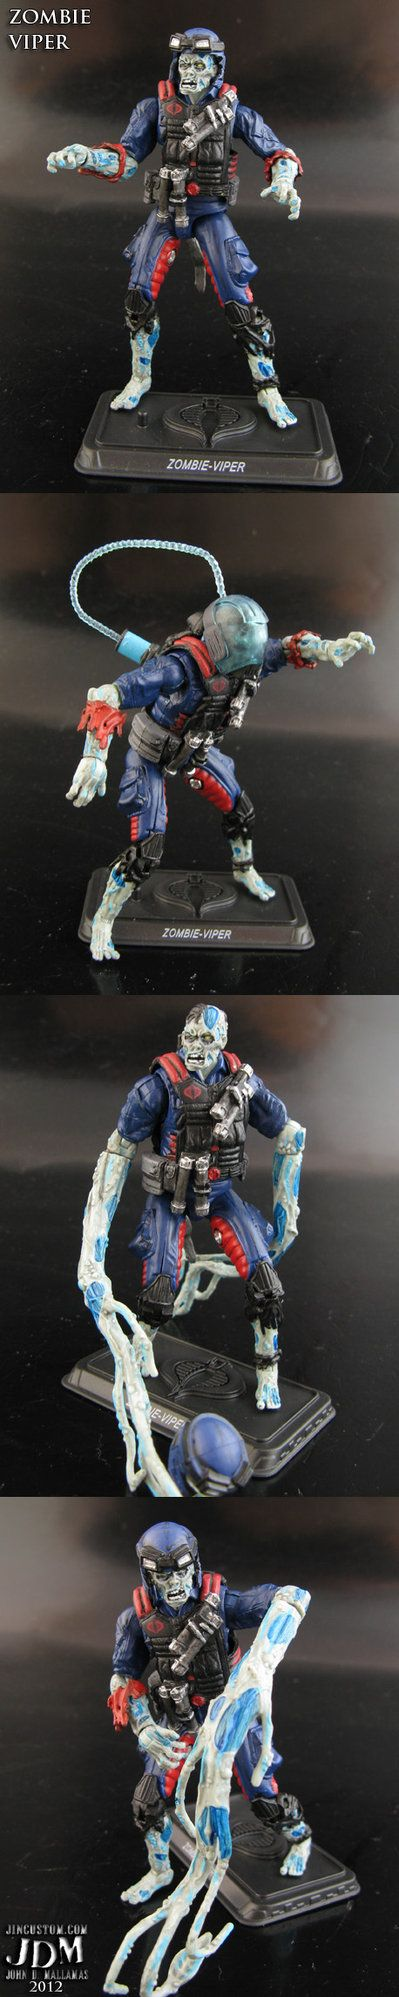 Cobra Zombie Viper custom action figure - G.I. Joe - John Mallamas